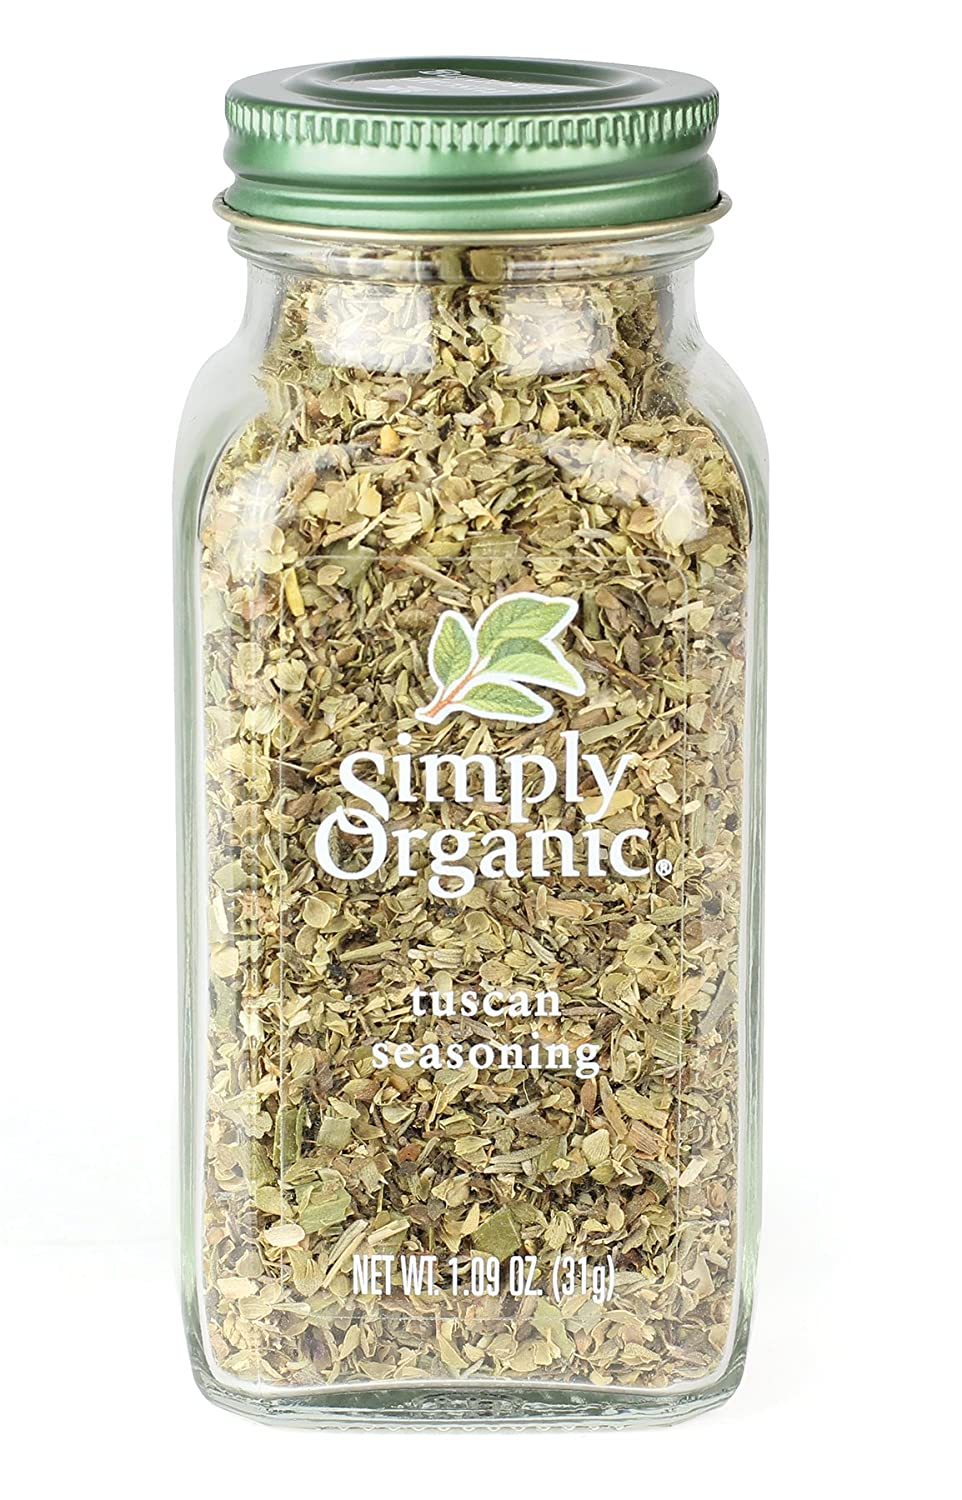 Simply Organic Certified tuscan Seasoning blend for the creamy tuscan chicken